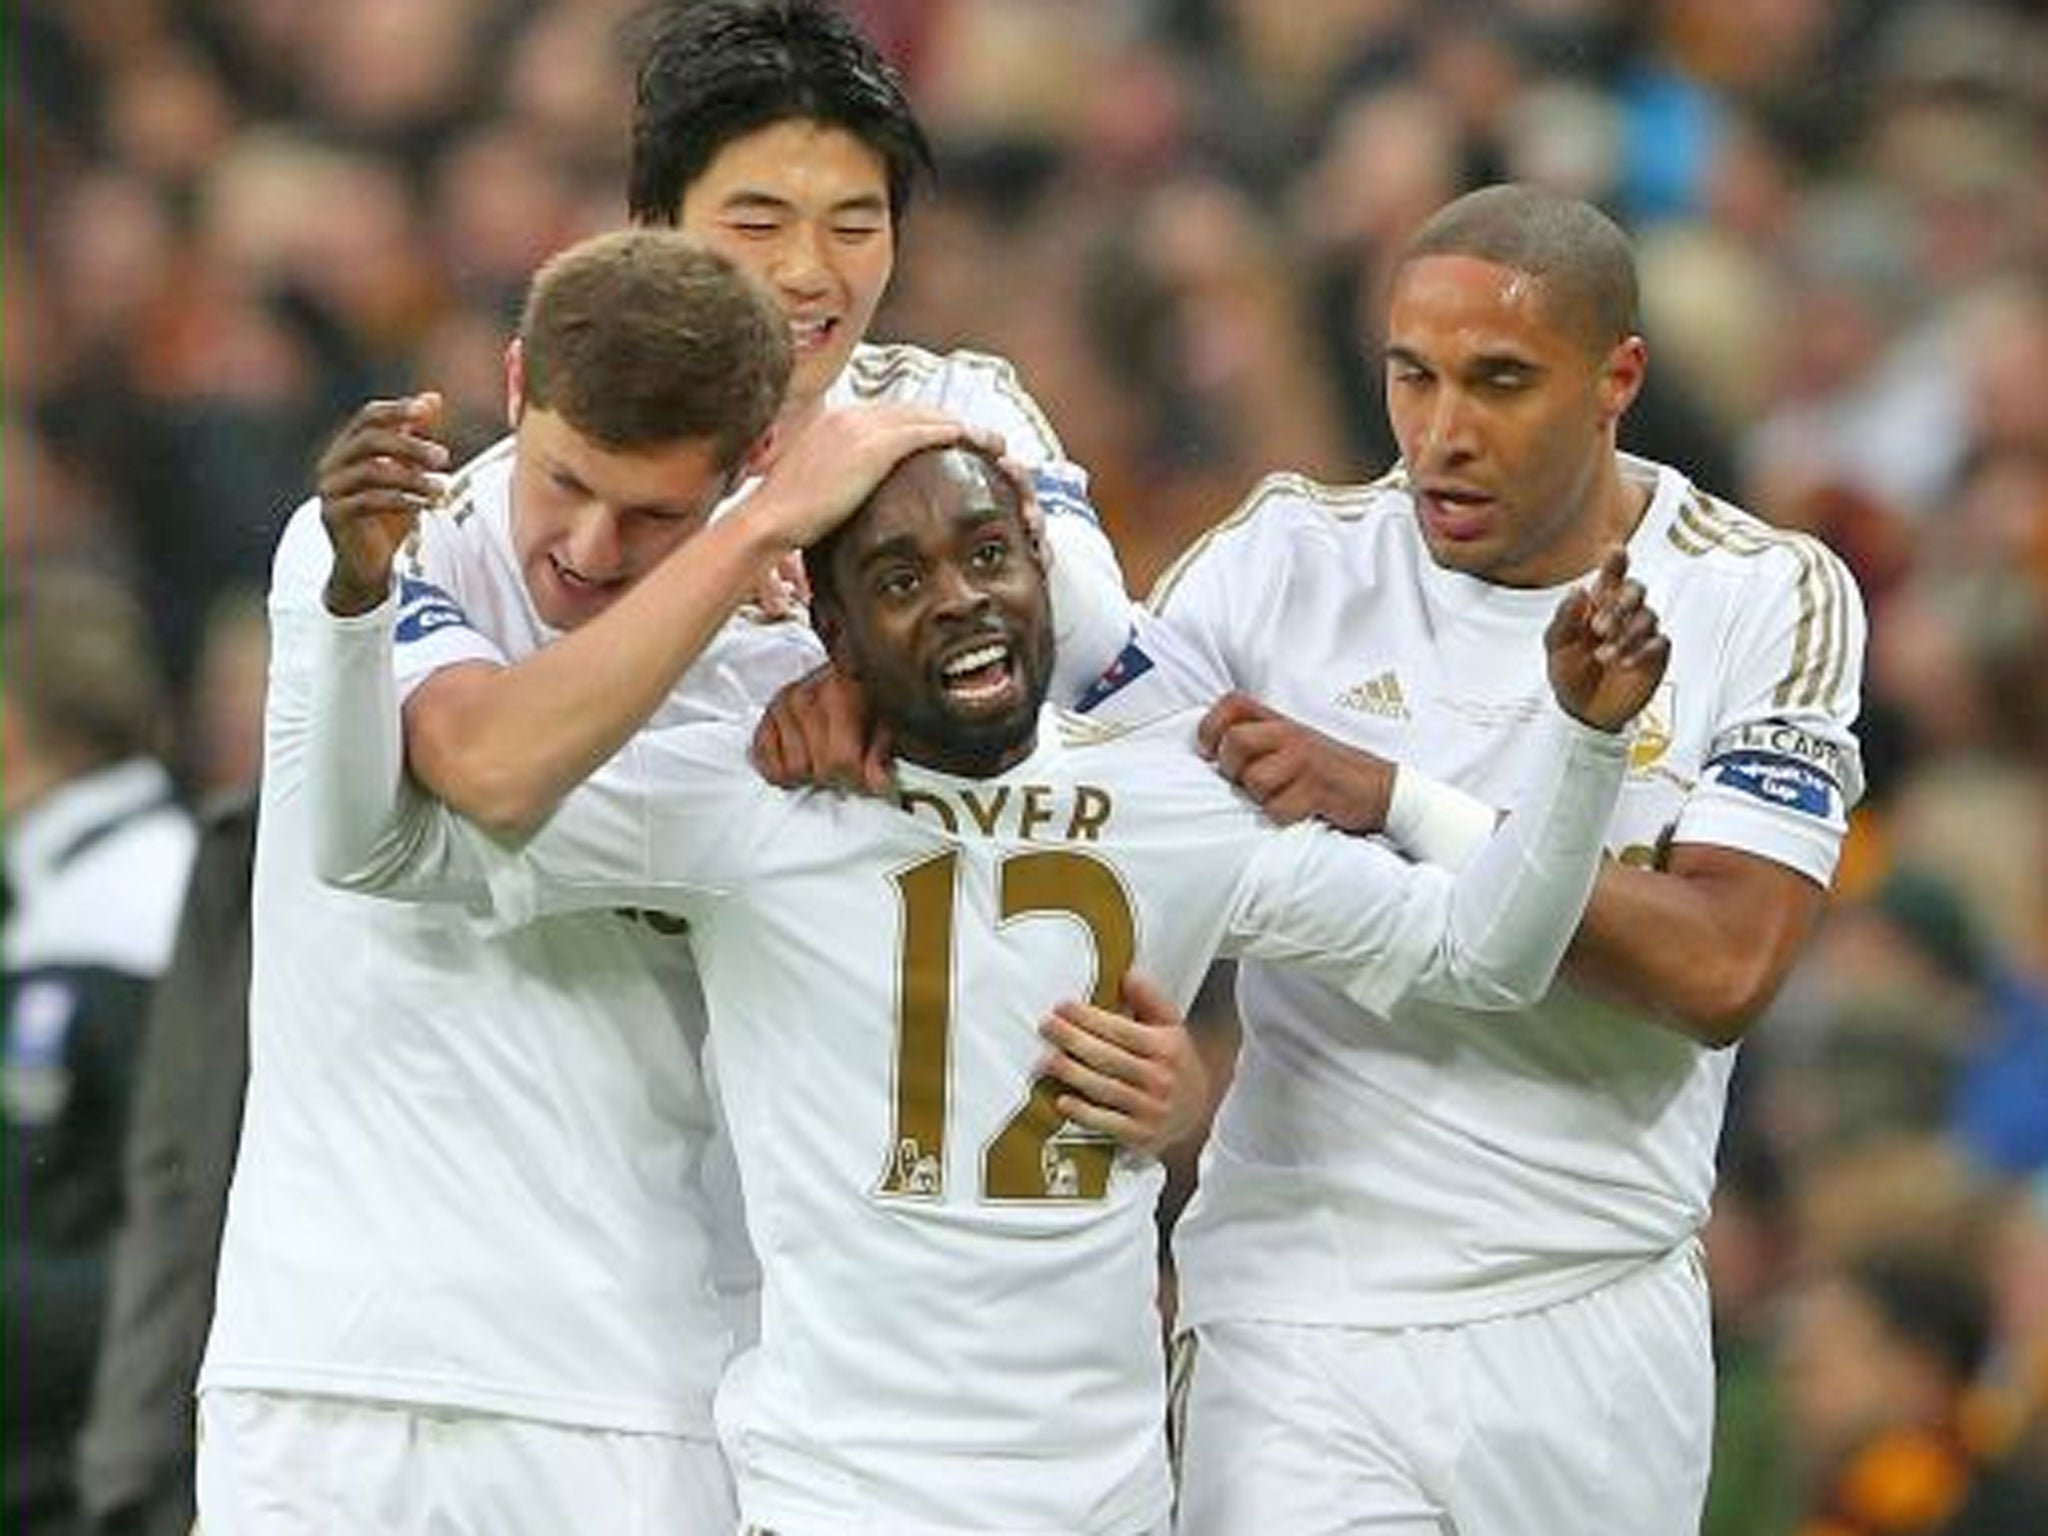 Epic Journey ends in stroll for Swansea with League Cup triumph over Bradford City | The Independentindependent_brand_ident_LOGOUntitled